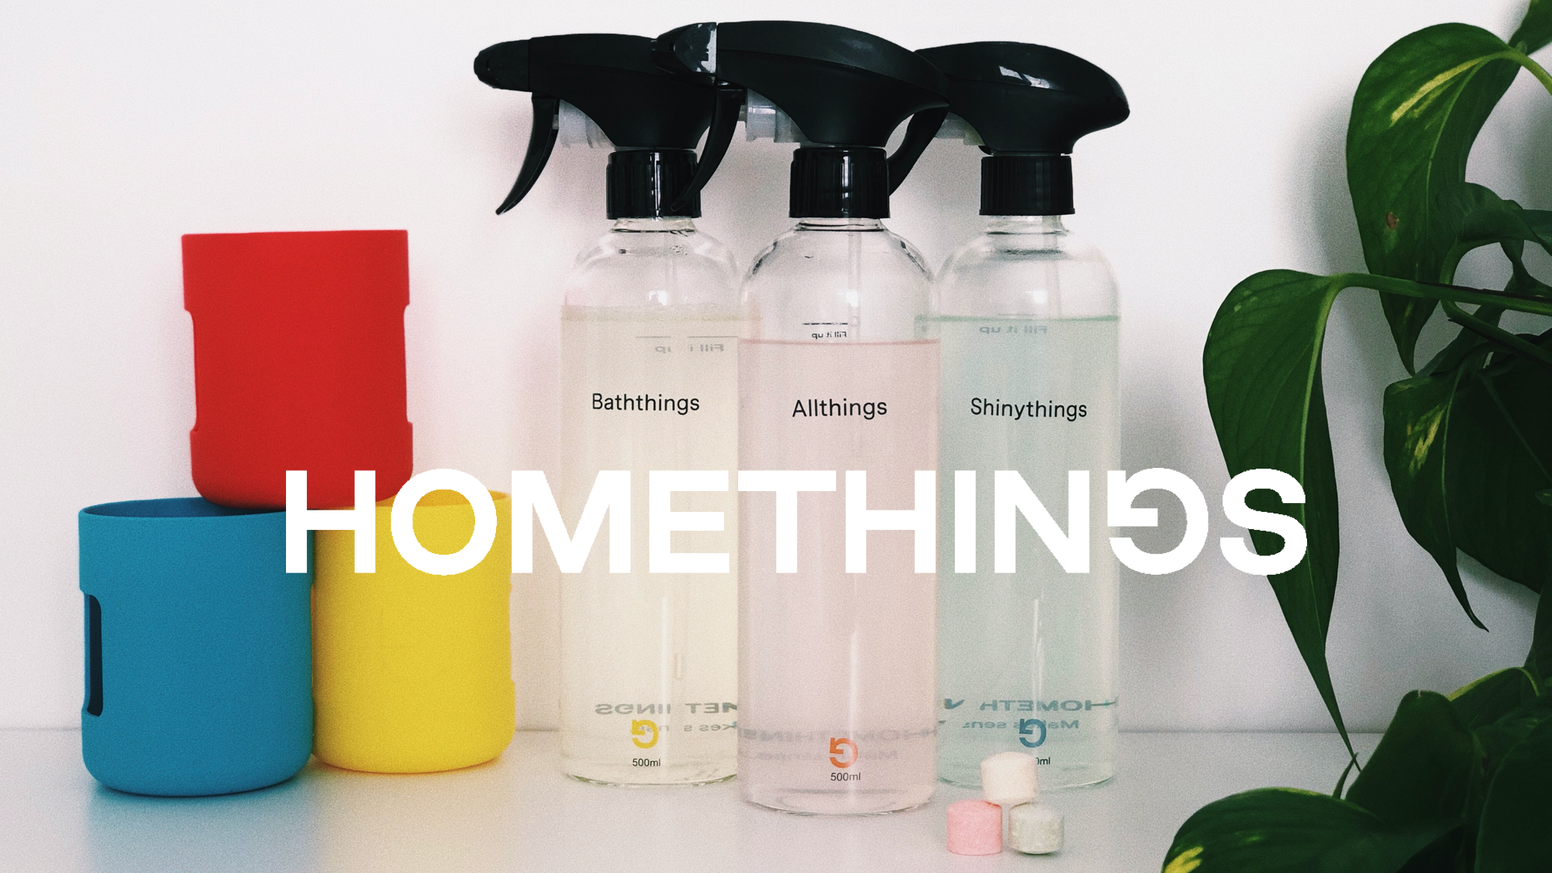 Tabletised cleaning sprays so you can get rid of single-use plastic under your sink. Order now on Indiegogo.